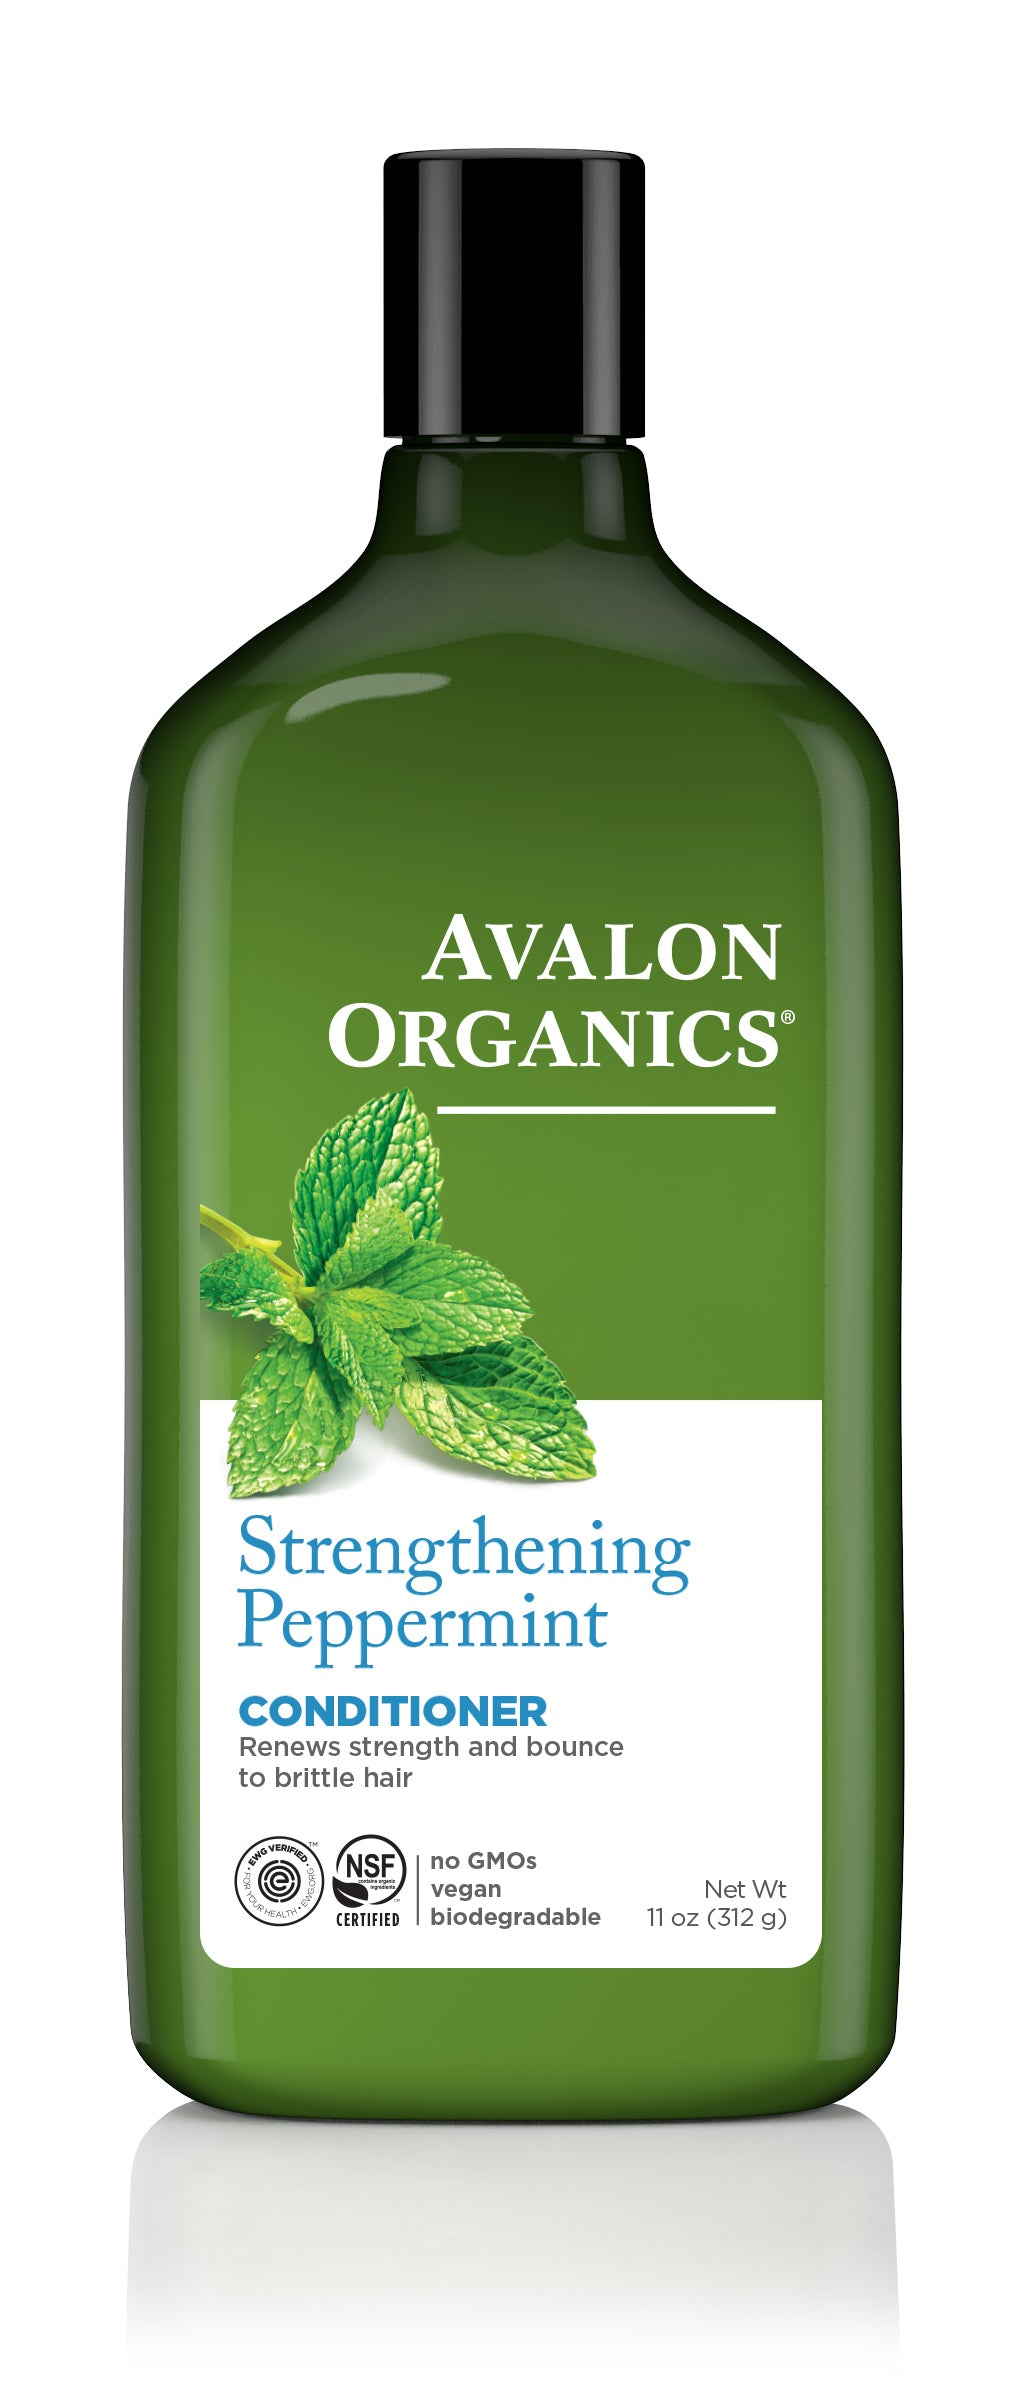 Strengthening Peppermint